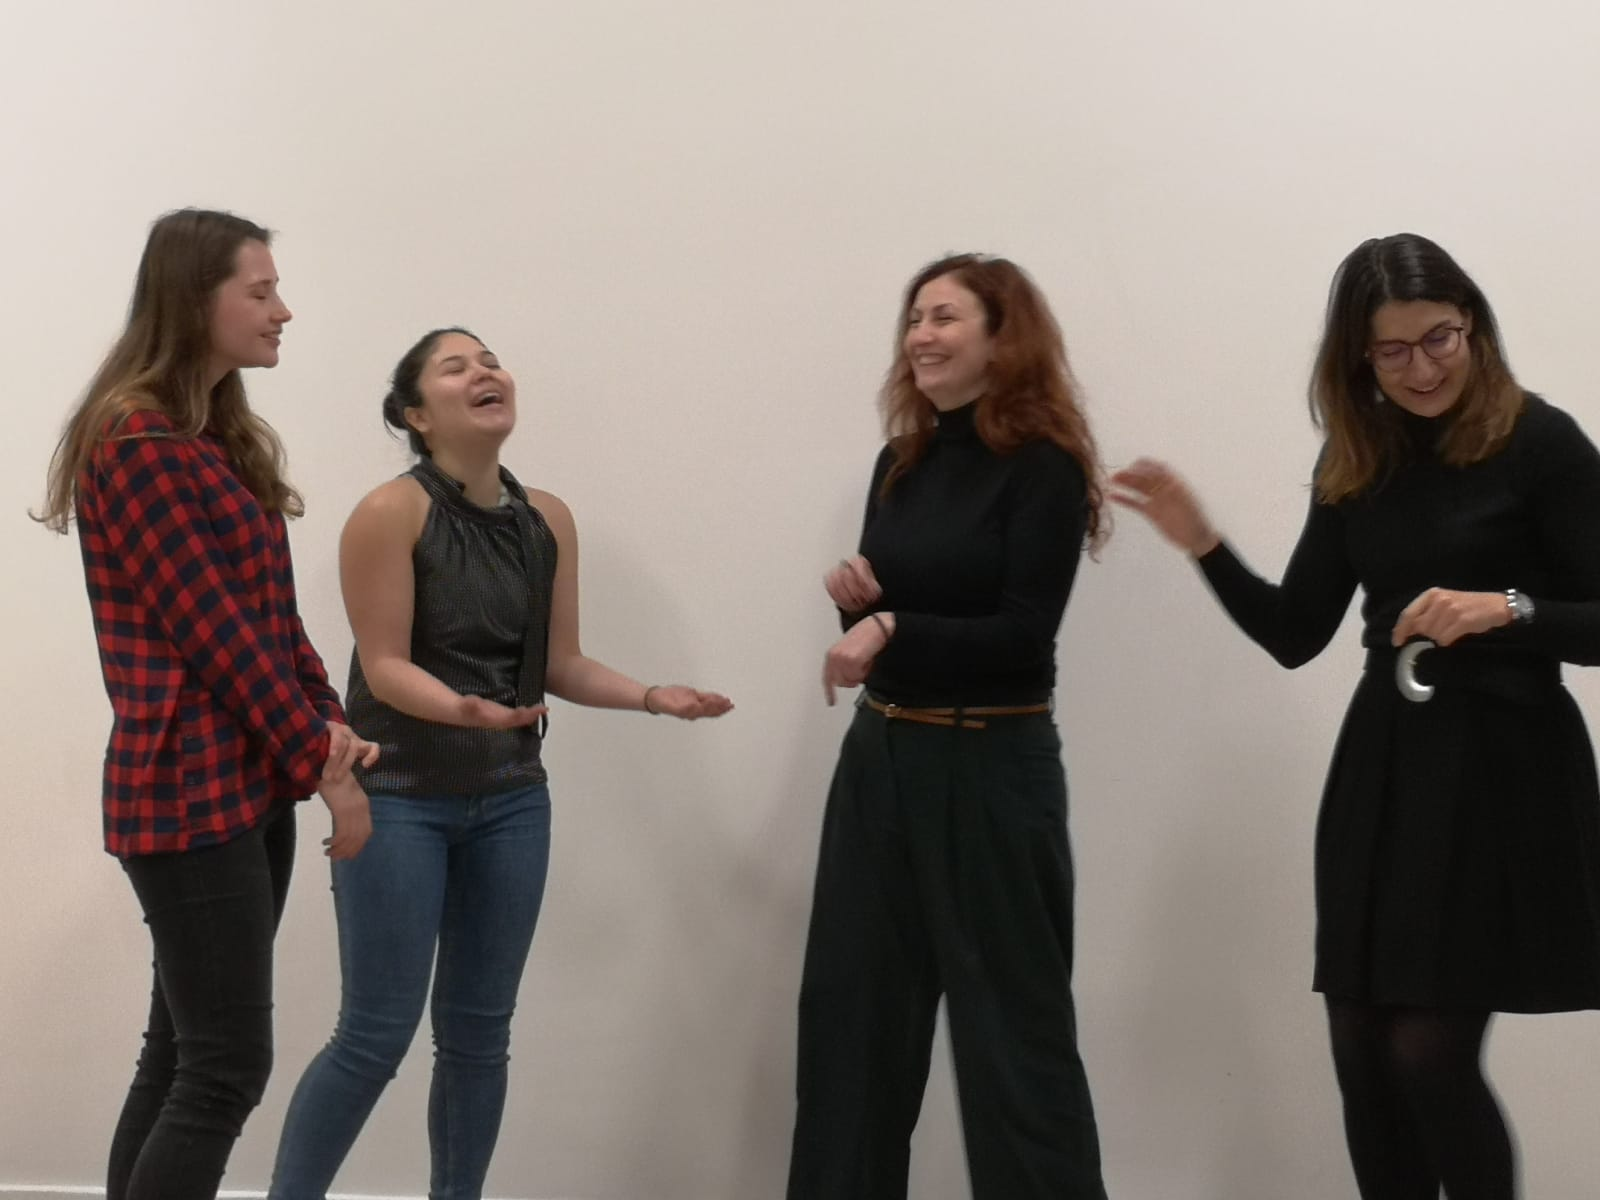 Acting class Act Attack. Four women are standing next to one another, moving their arms and laughing